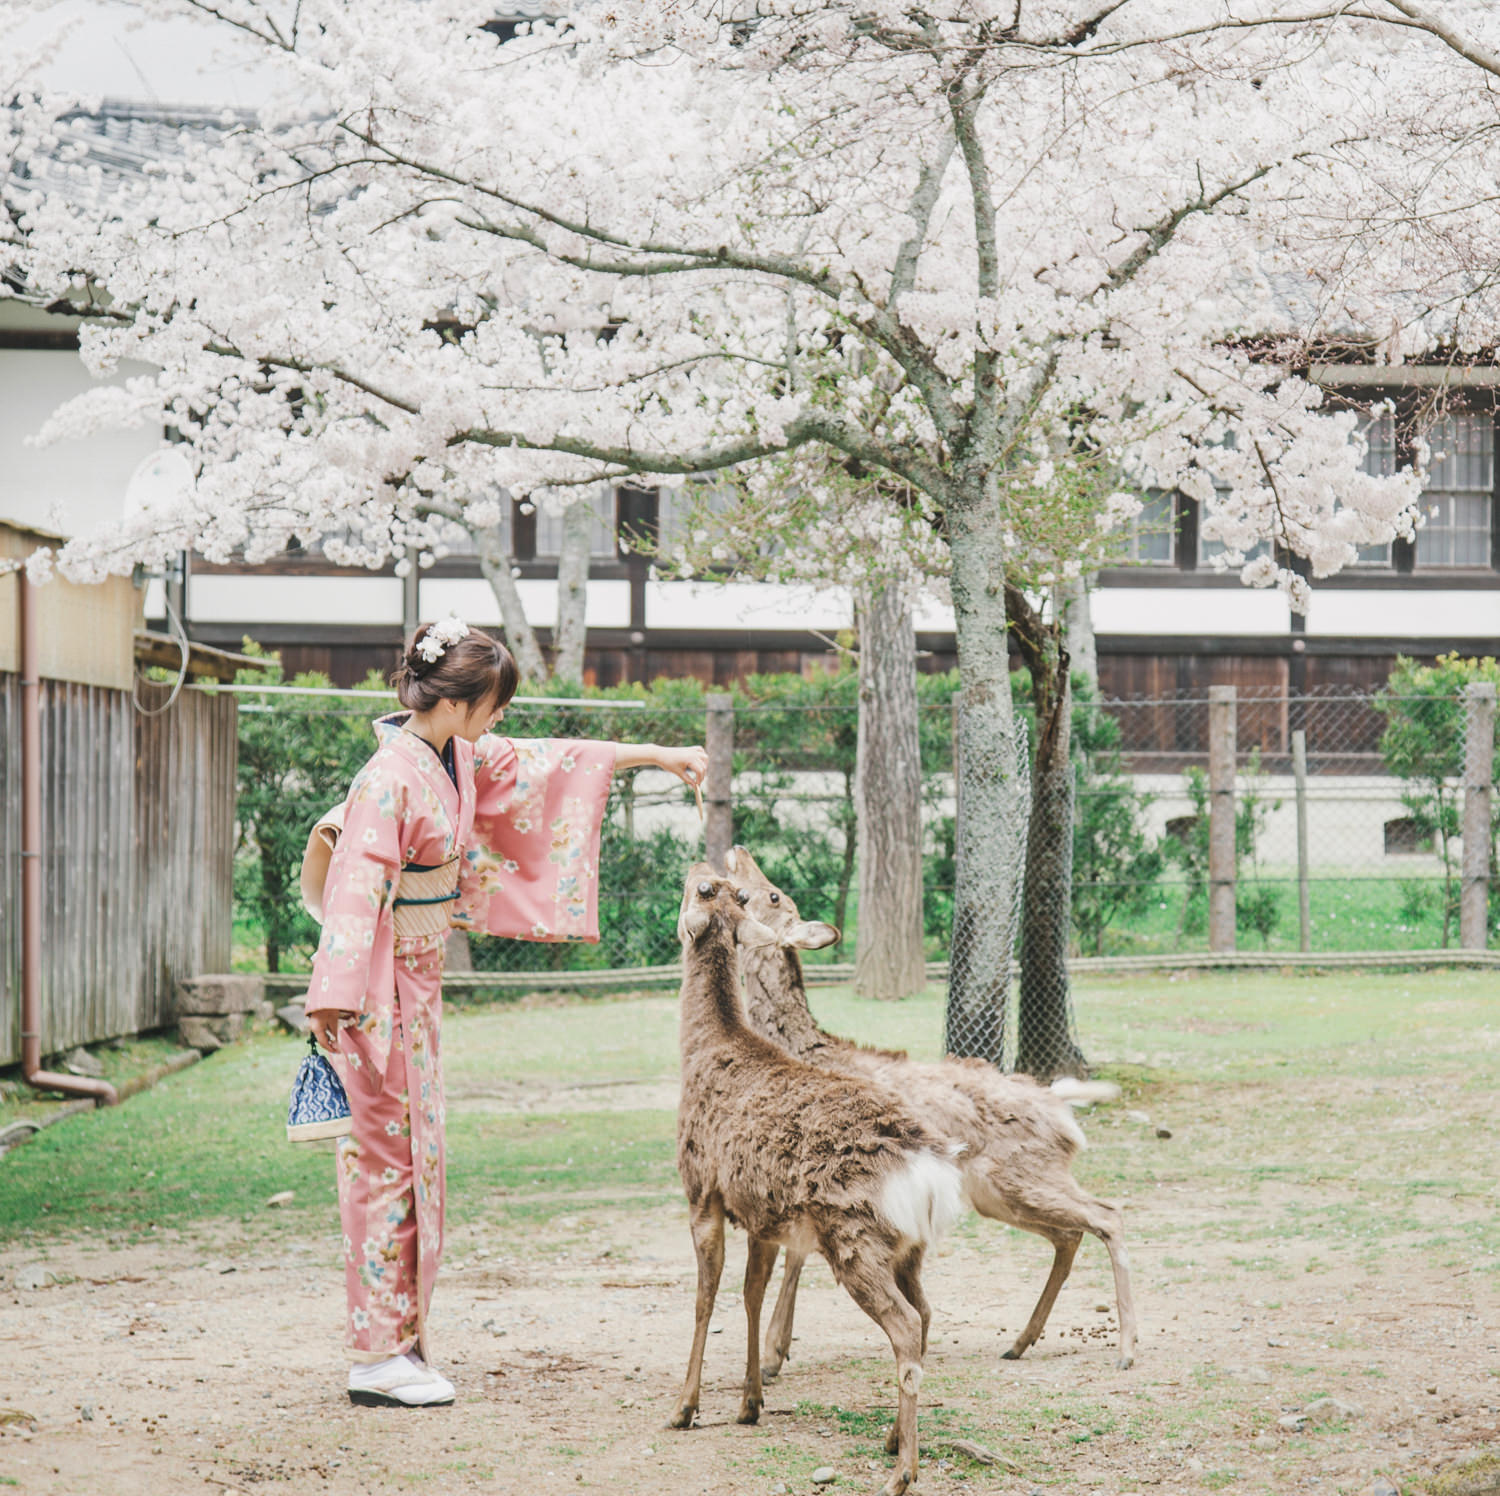 Cherry_Blossom_Pre_Wedding_Photo_in_Nara_with_deer_by_CHYMO_&_MO